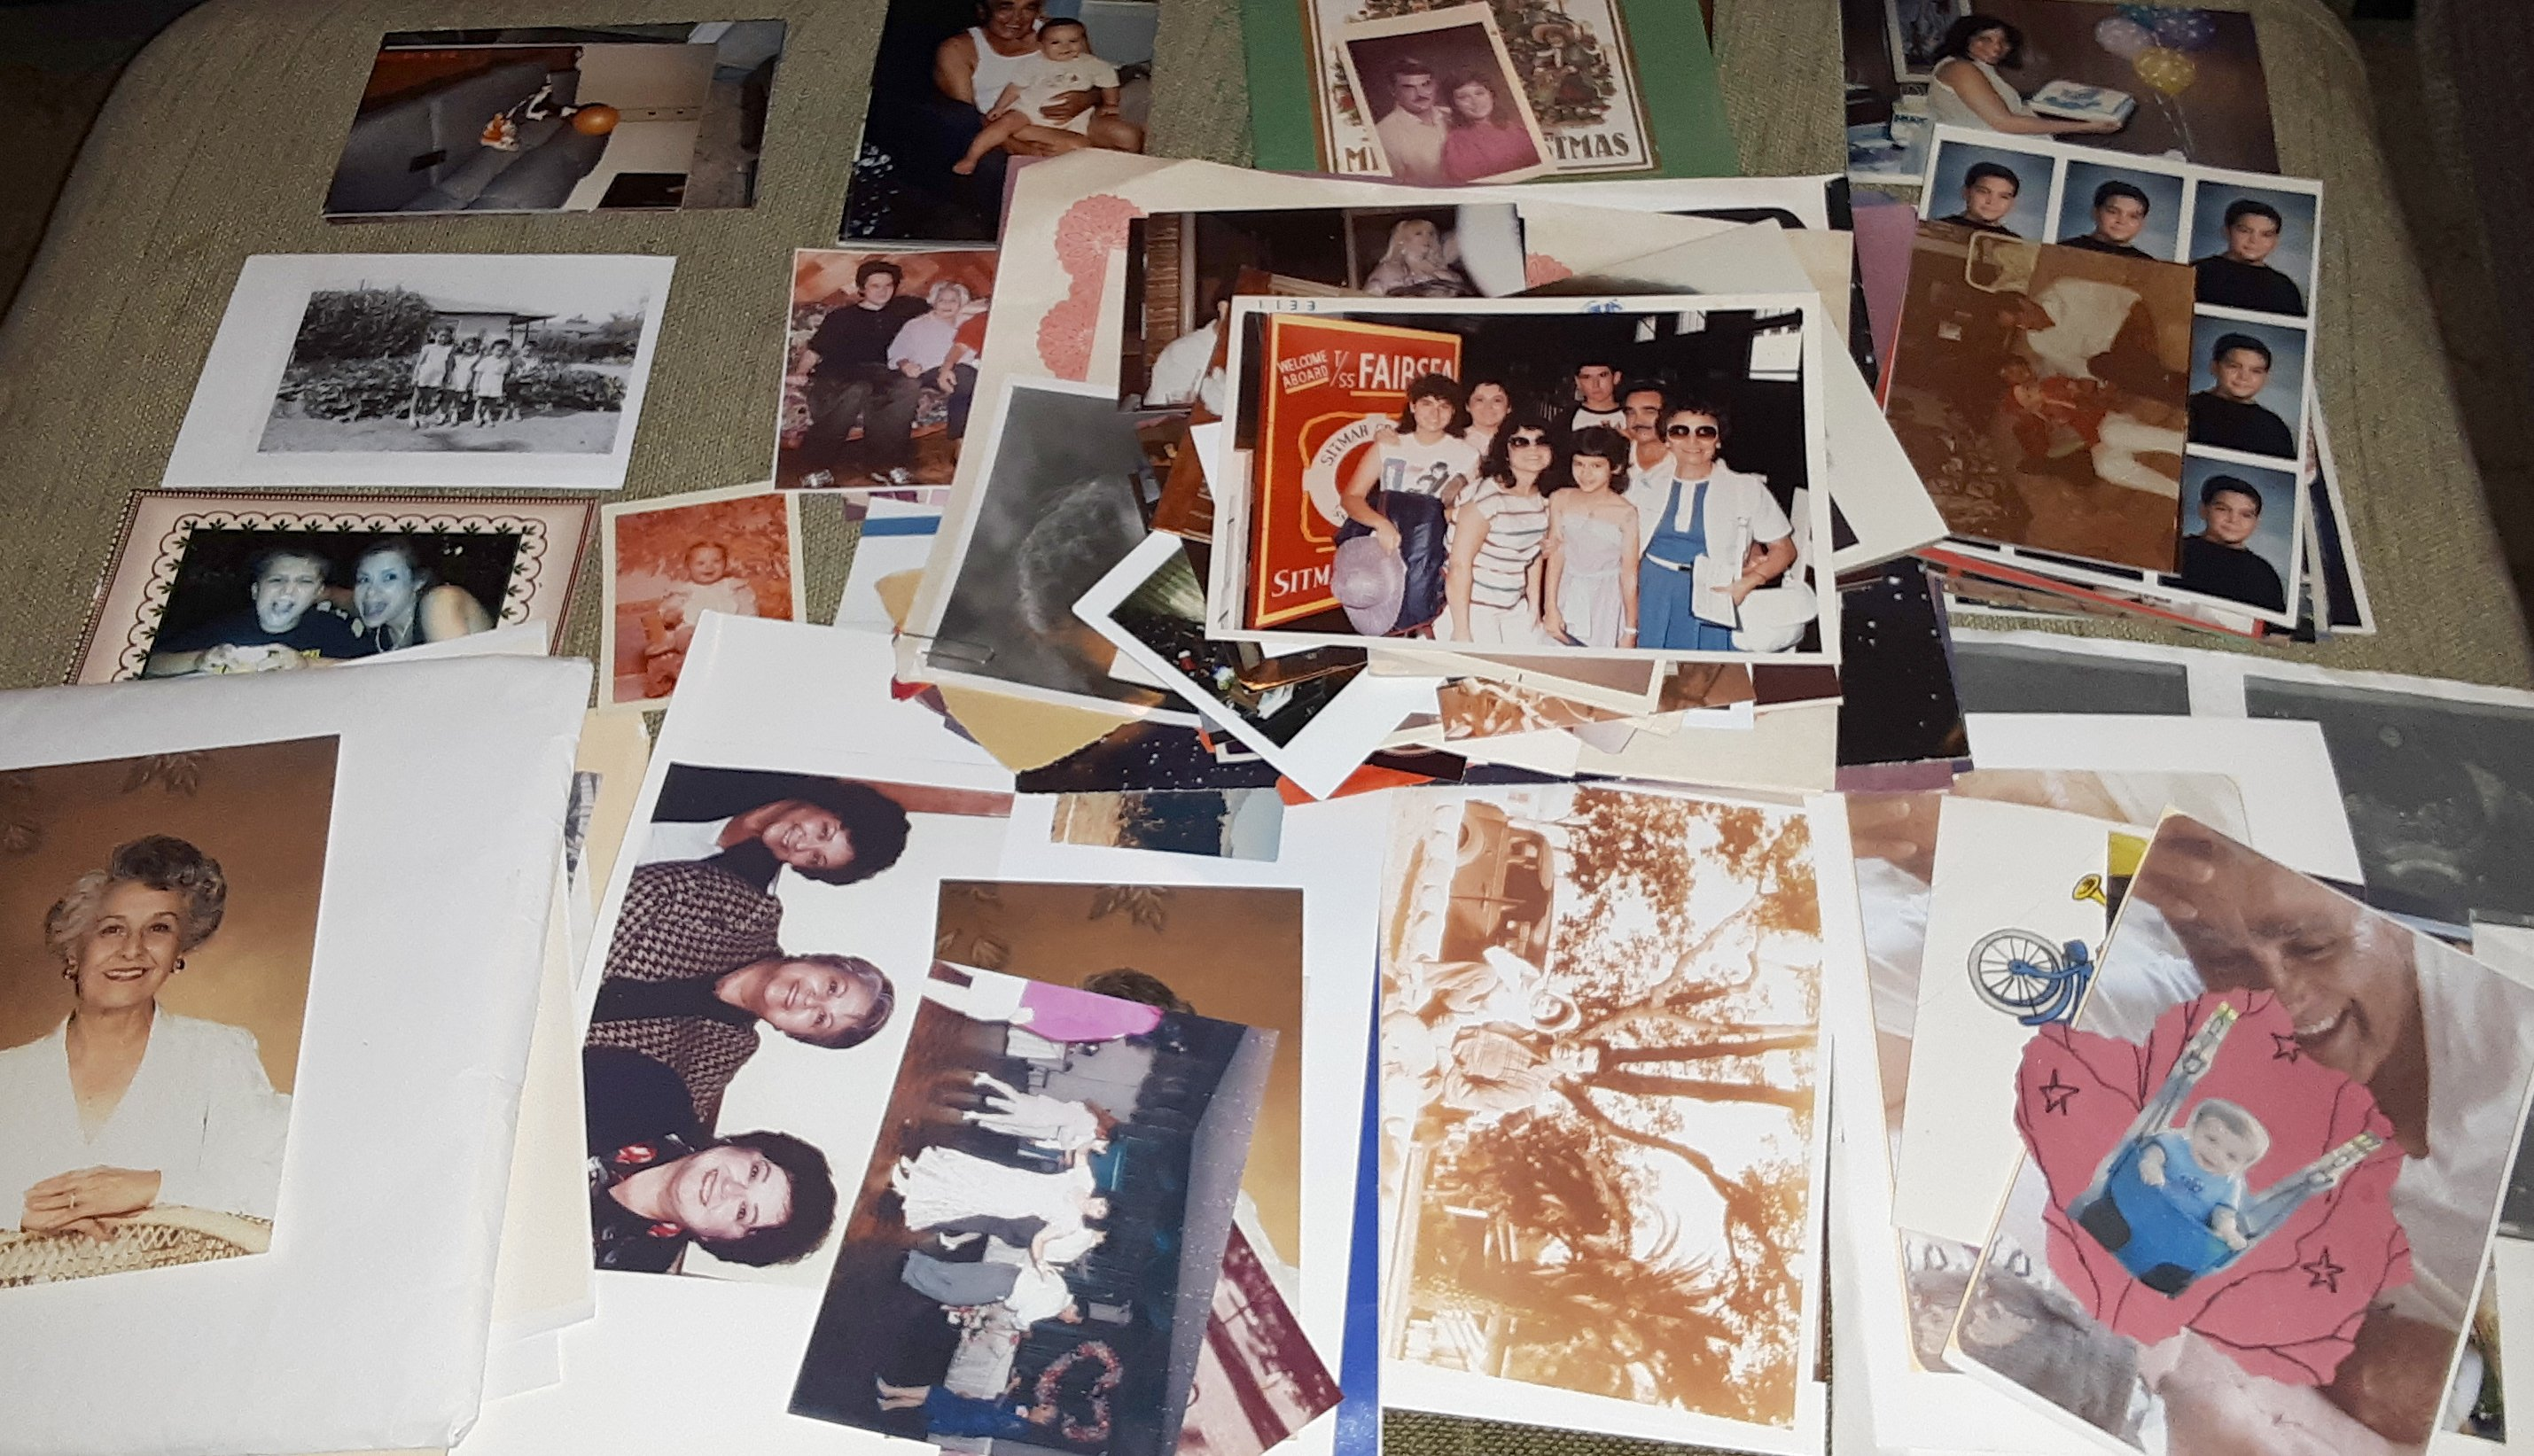 dozens of old family photos school photos and portraits are spread out on top of a bed